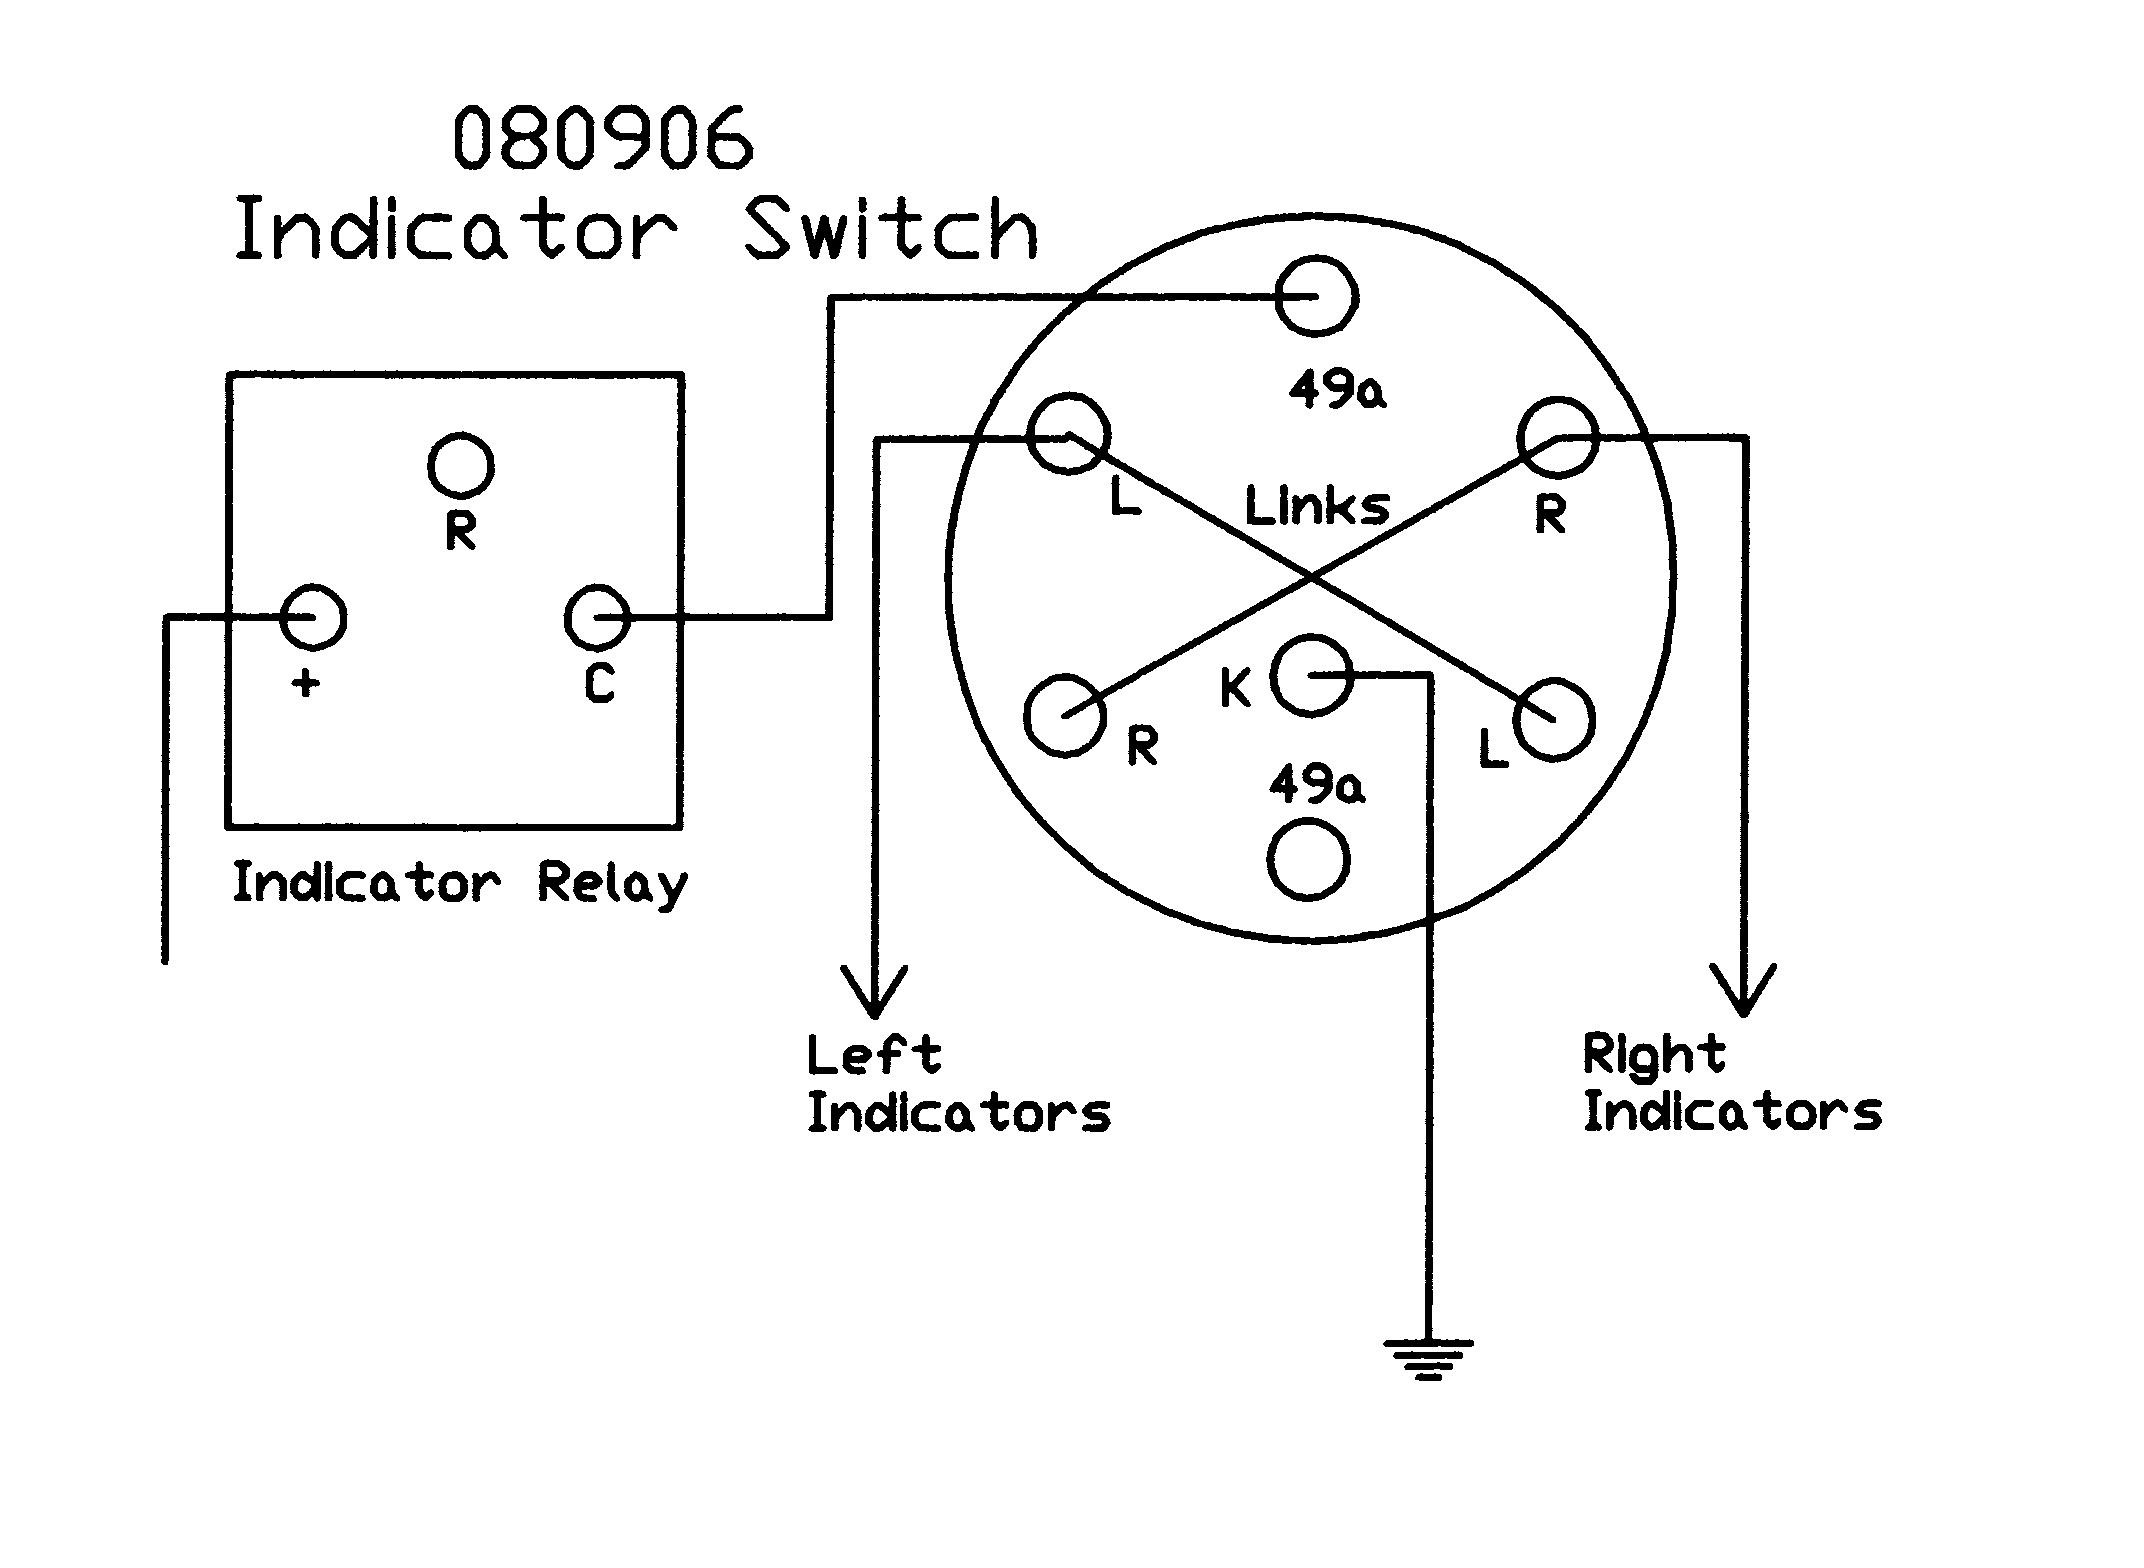 rotary switch wiring diagram guitar wiring diagram database Switch Diagram Rotary Wiring Stkr10x